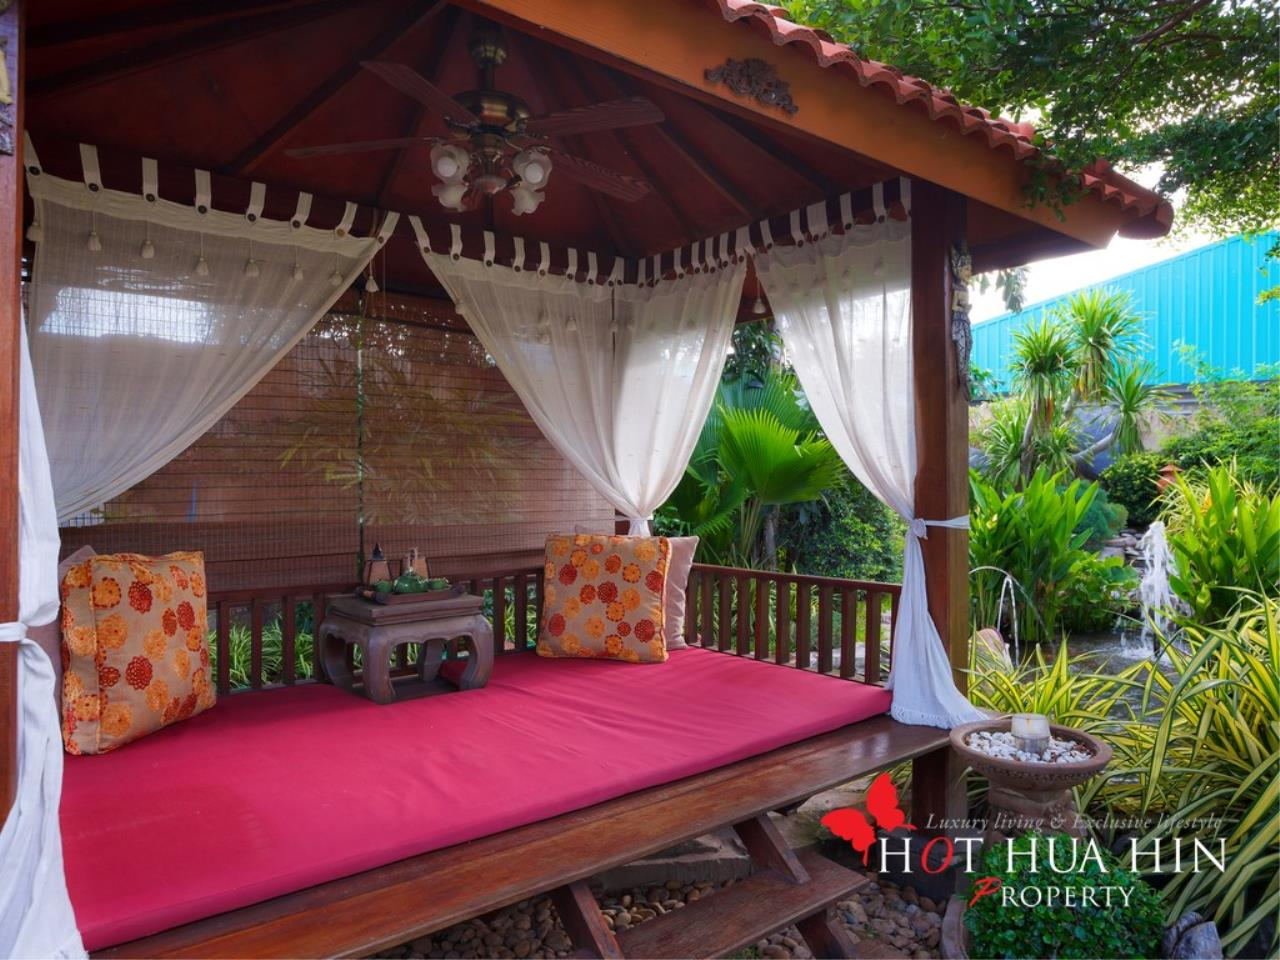 Hot Hua Hin Co. Ltd. Agency's Well Built Home With Stunning Gardens And Two Full Kitchens 36